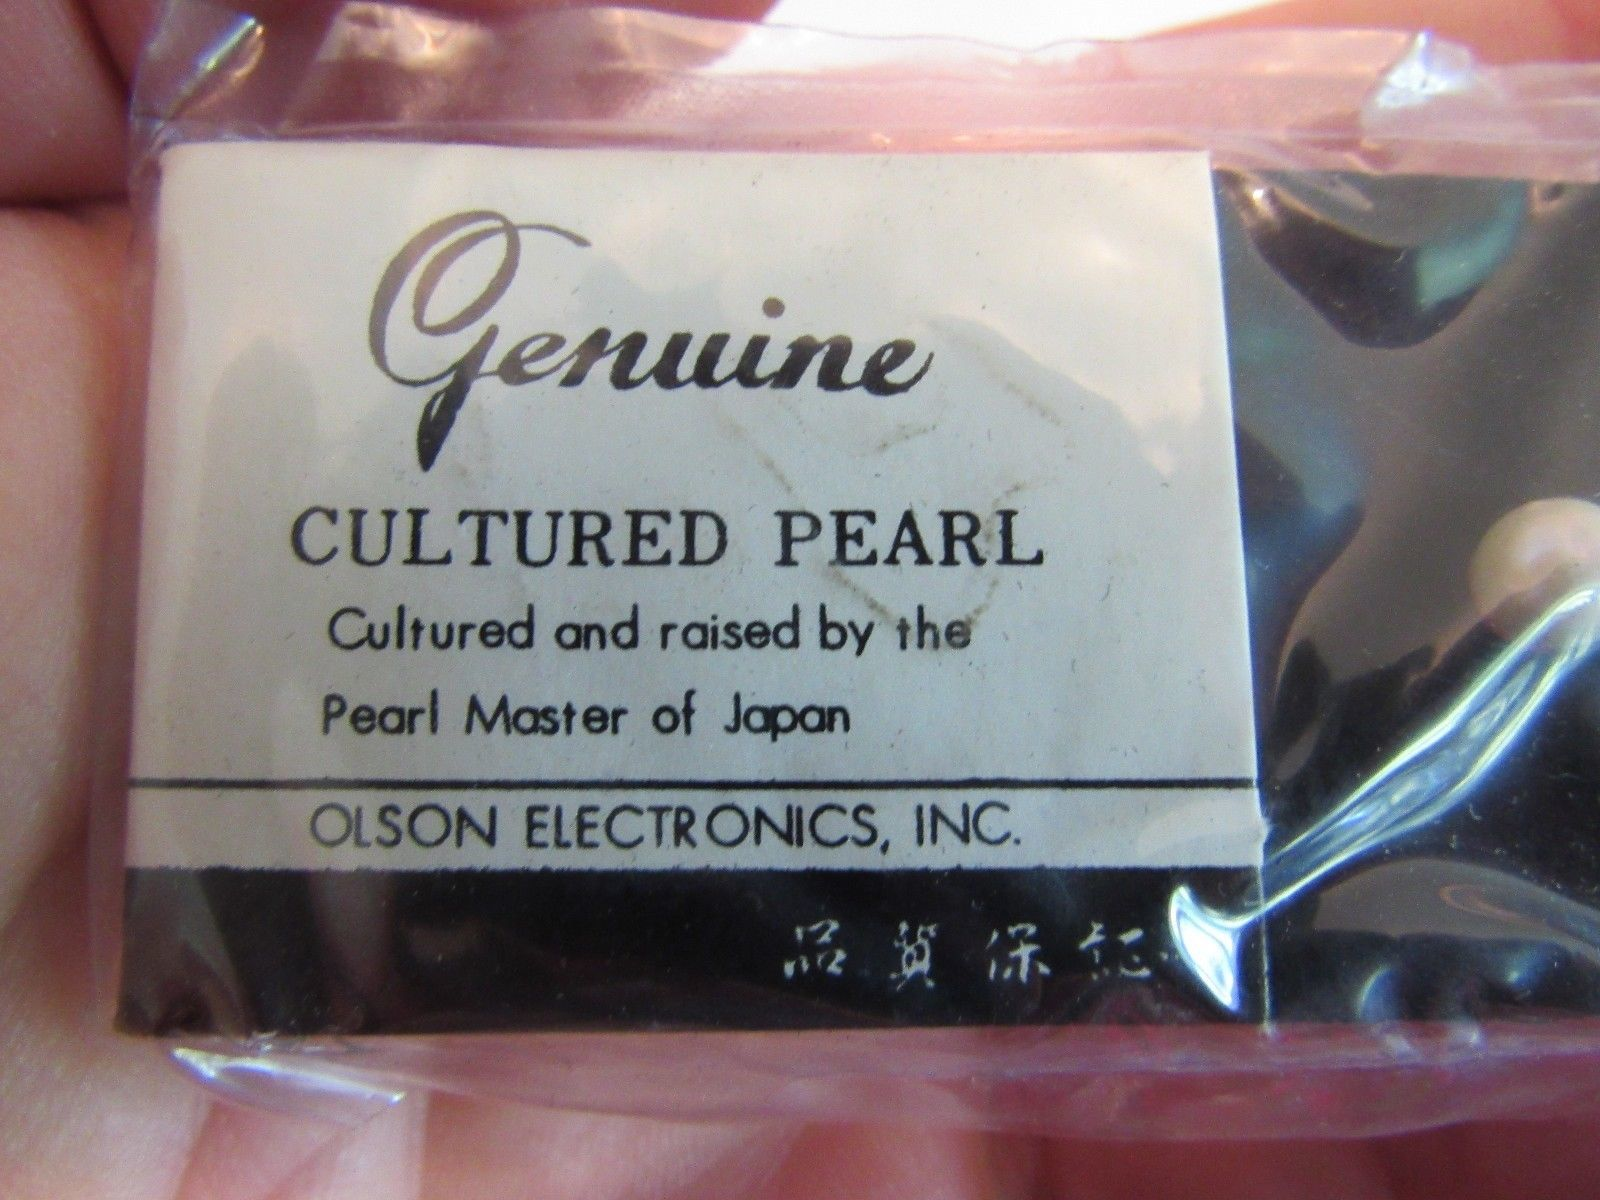 Vintage Cultured Pearl Olson Electronics Promo By Pearl Master Of Japan